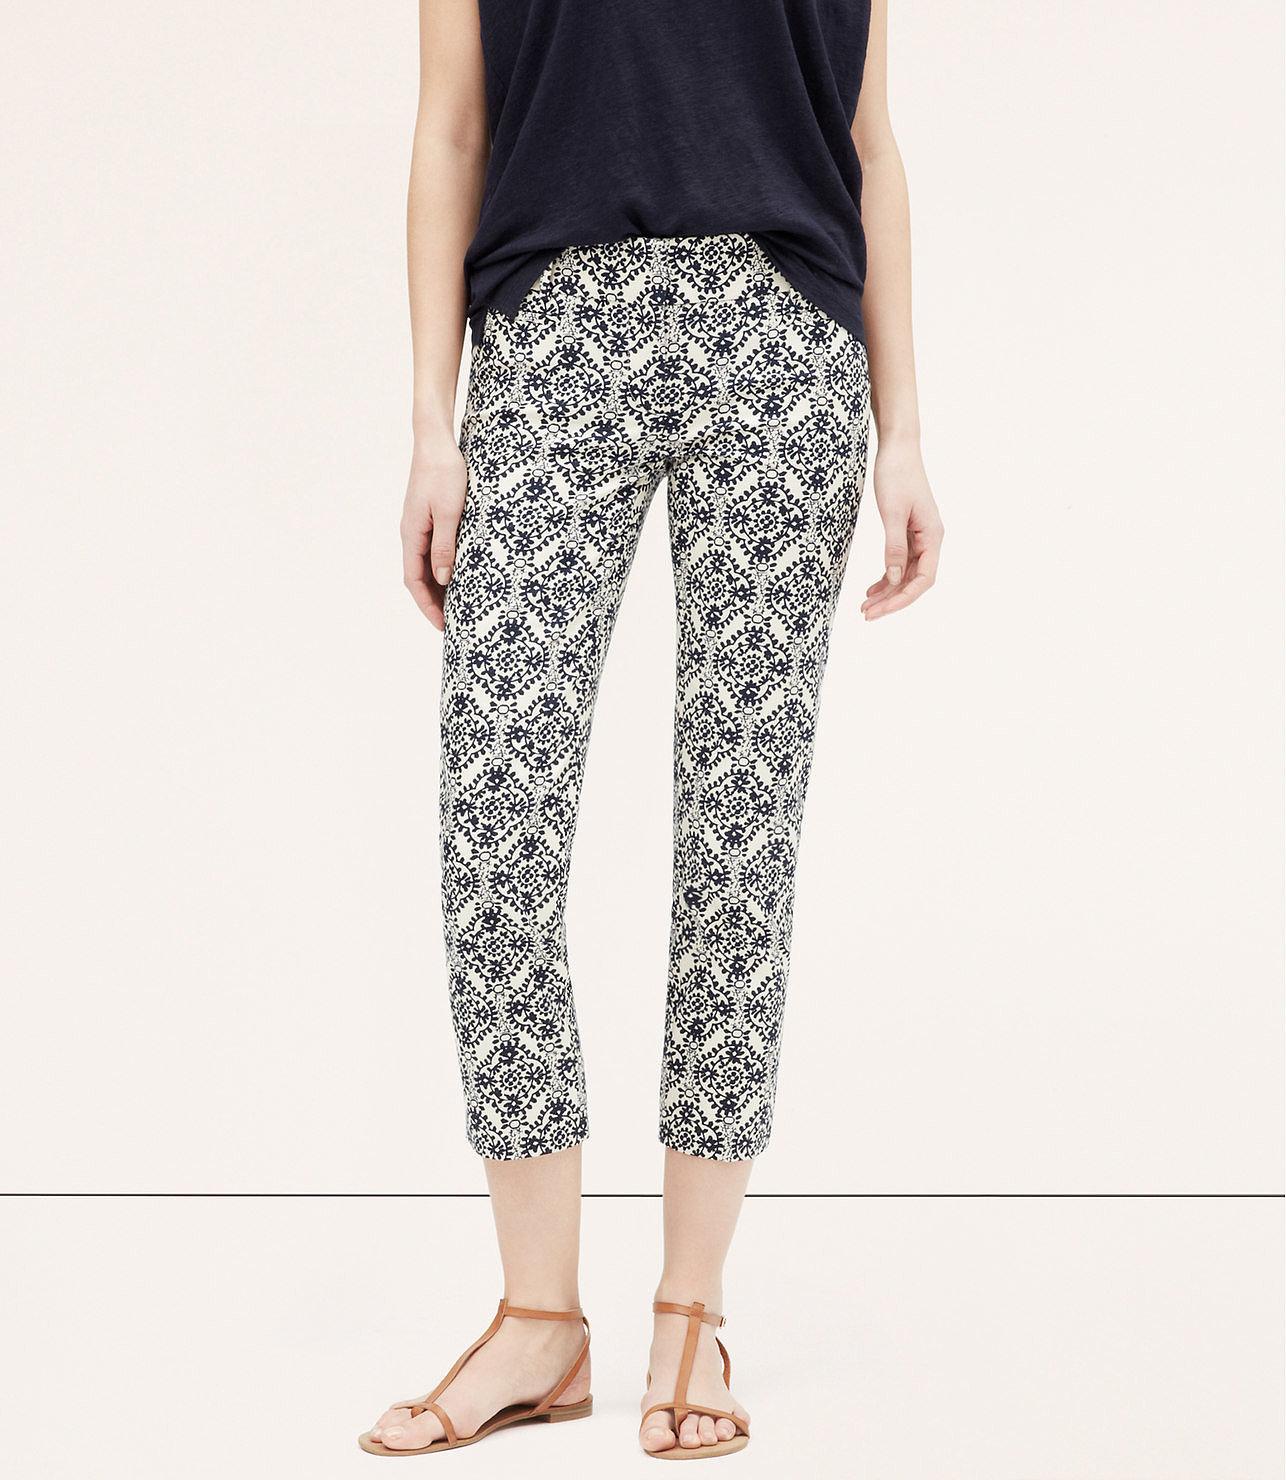 LOFT Mosaic Basketweave Cotton Riviera Pants ($70)